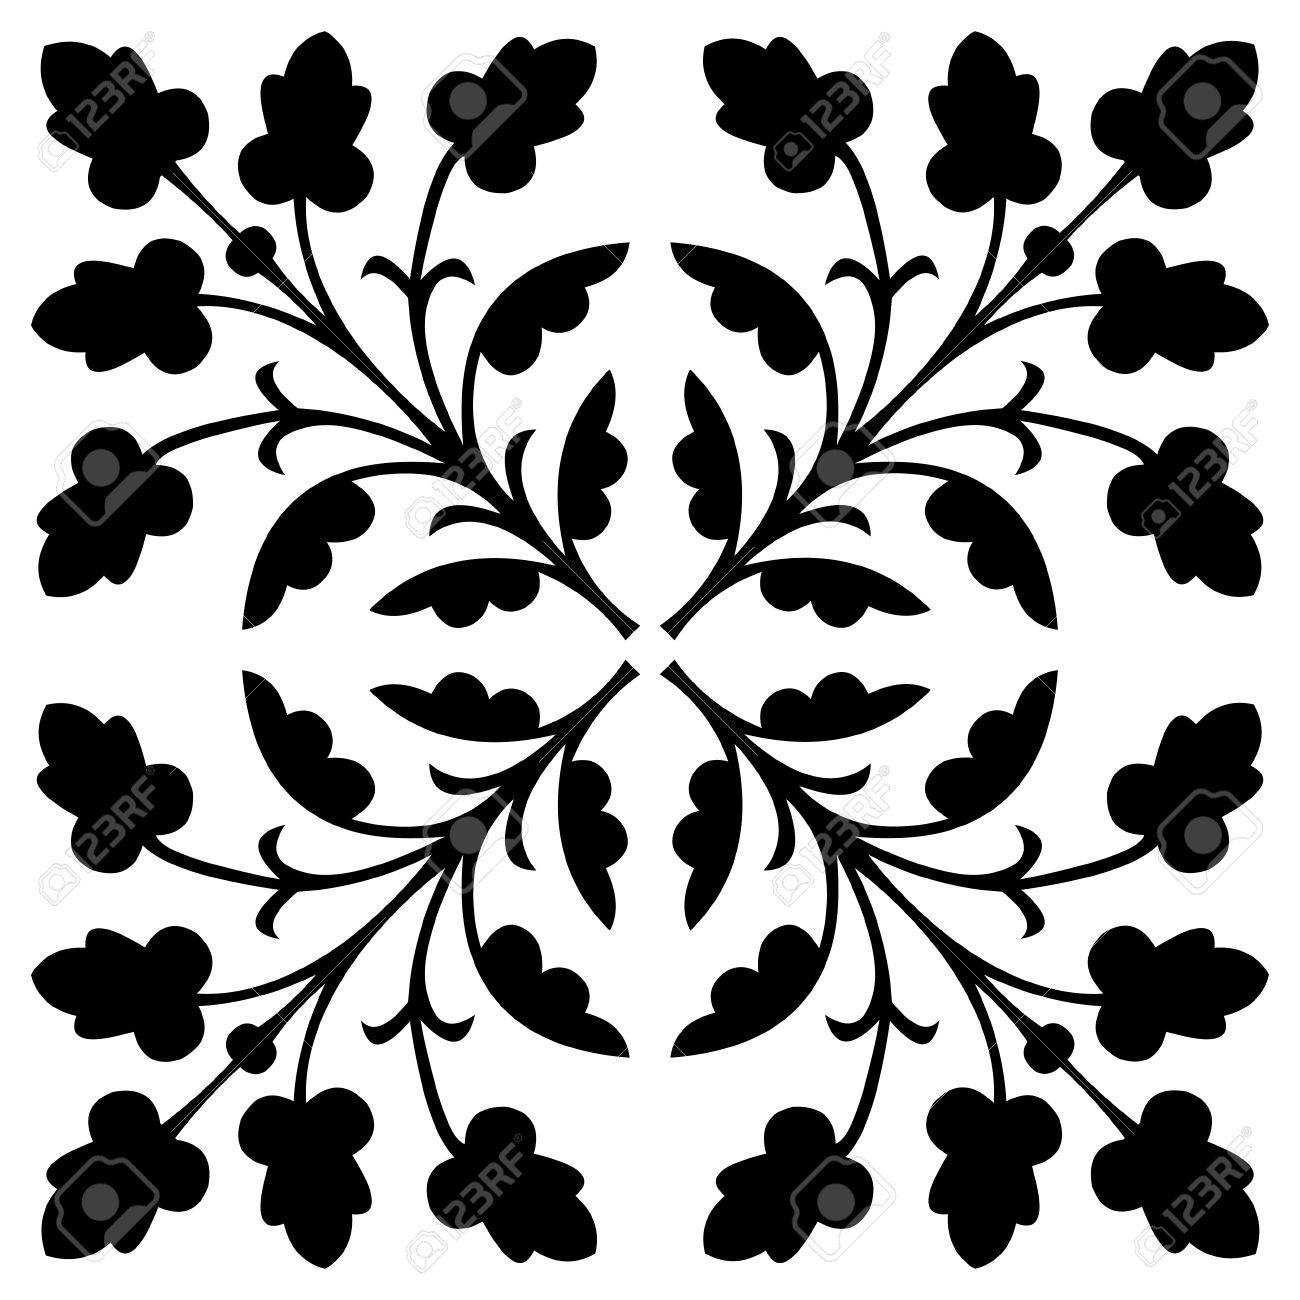 floral pattern royalty free cliparts vectors and stock rh 123rf com vector floral pattern free vector floral pattern background